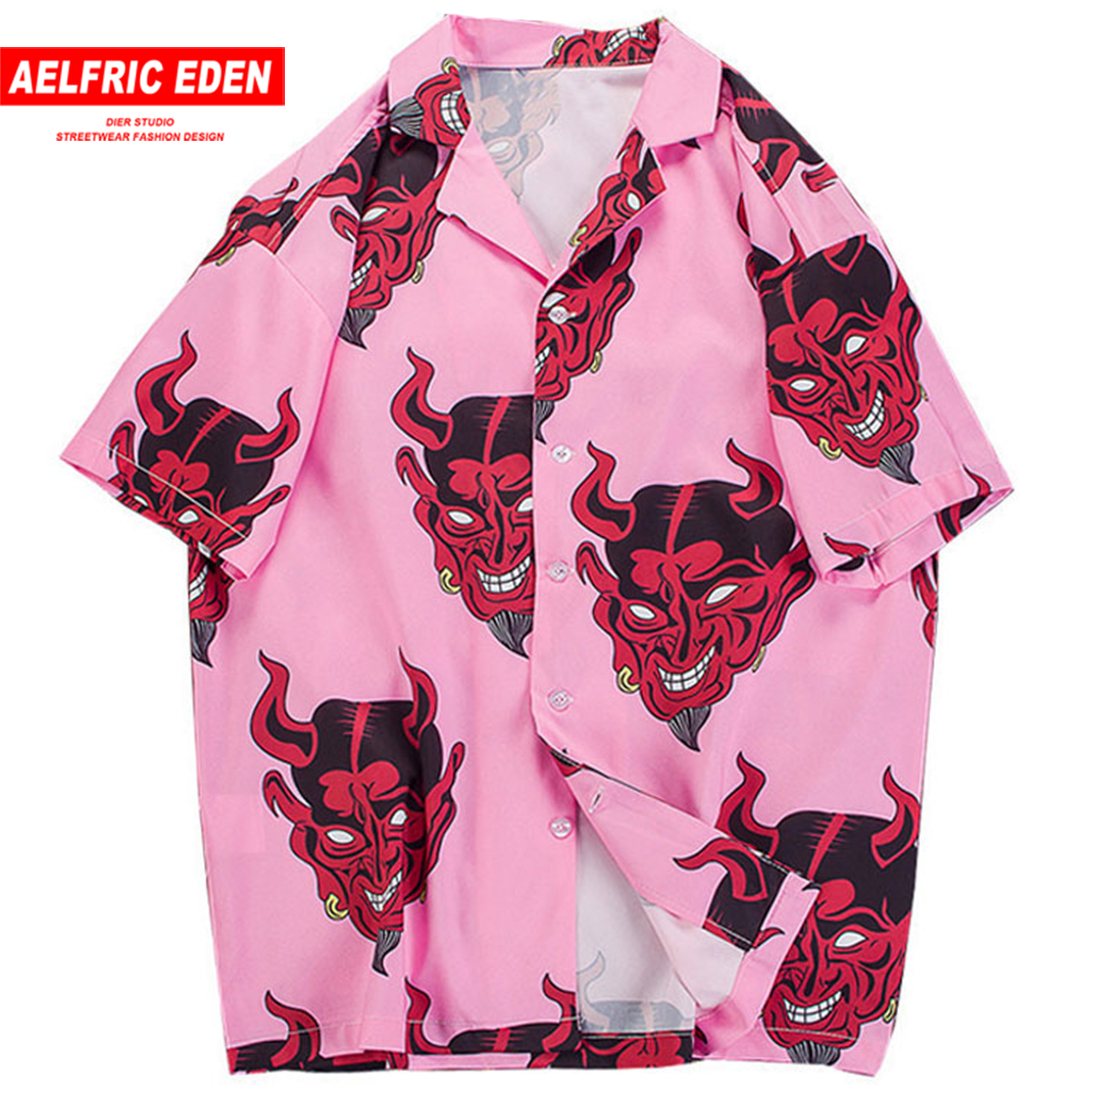 Aelfric Eden Devil Hawaiian Shirts Men 2019 3D Print Summer Beach Short Sleeve Tops Loose Harajuku Shirt Hip Hop Streetwear